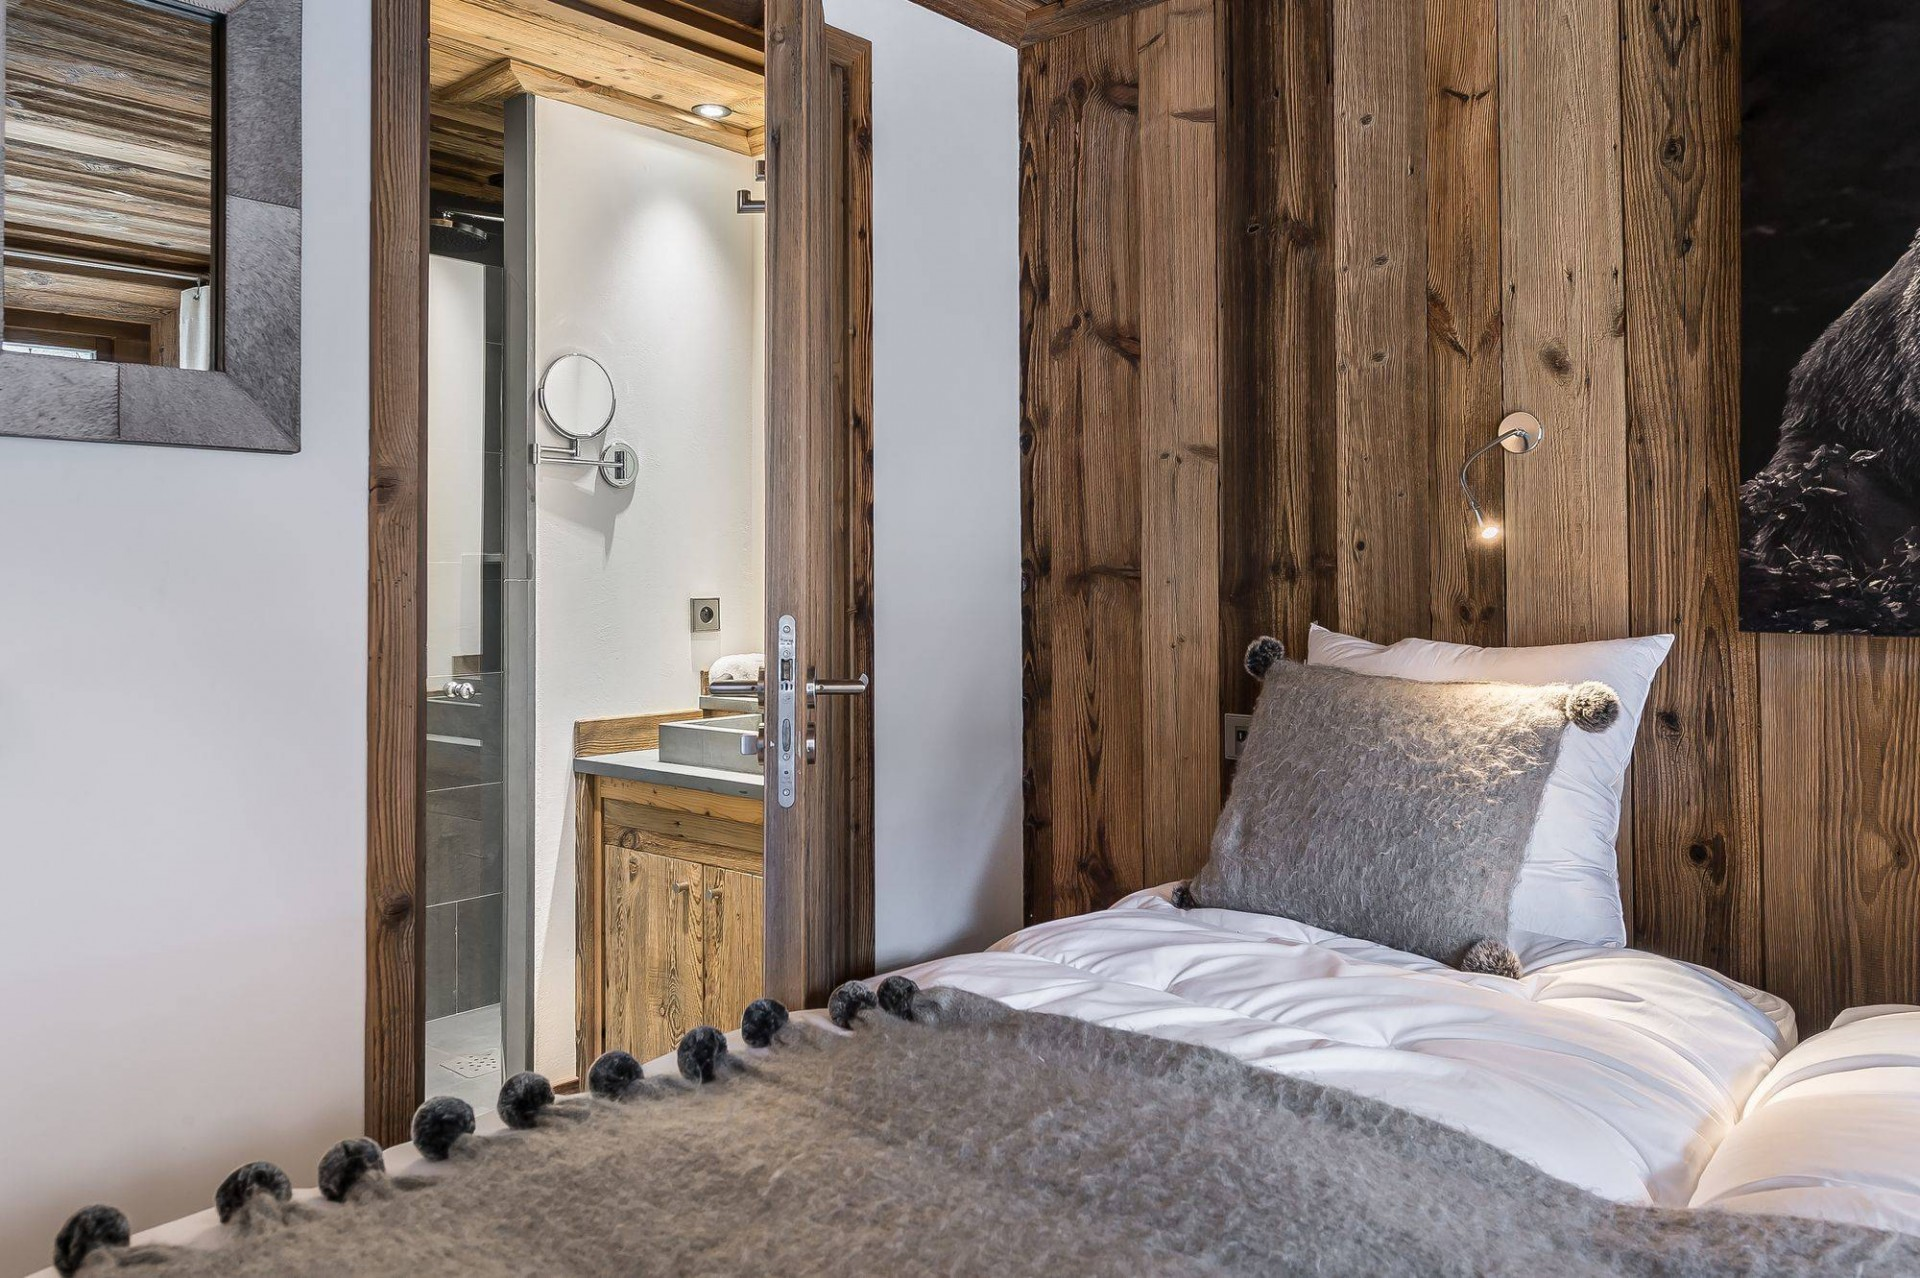 Val d'Isère Location Appartement Luxe Ululite Chambre